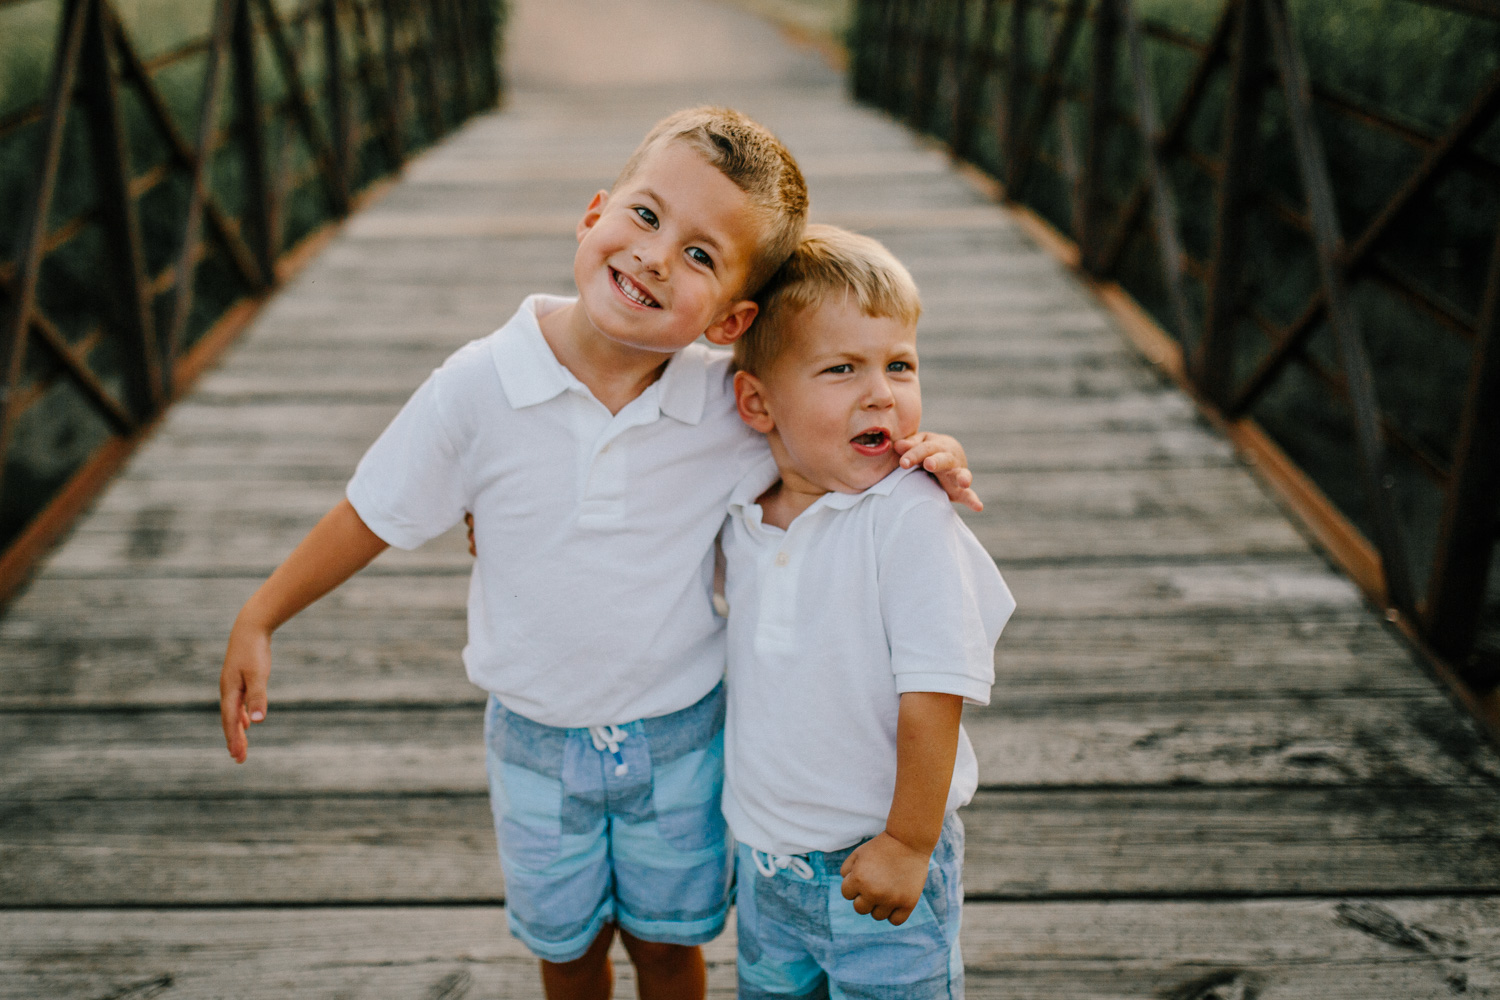 families_coleman boys (1 of 1).jpg